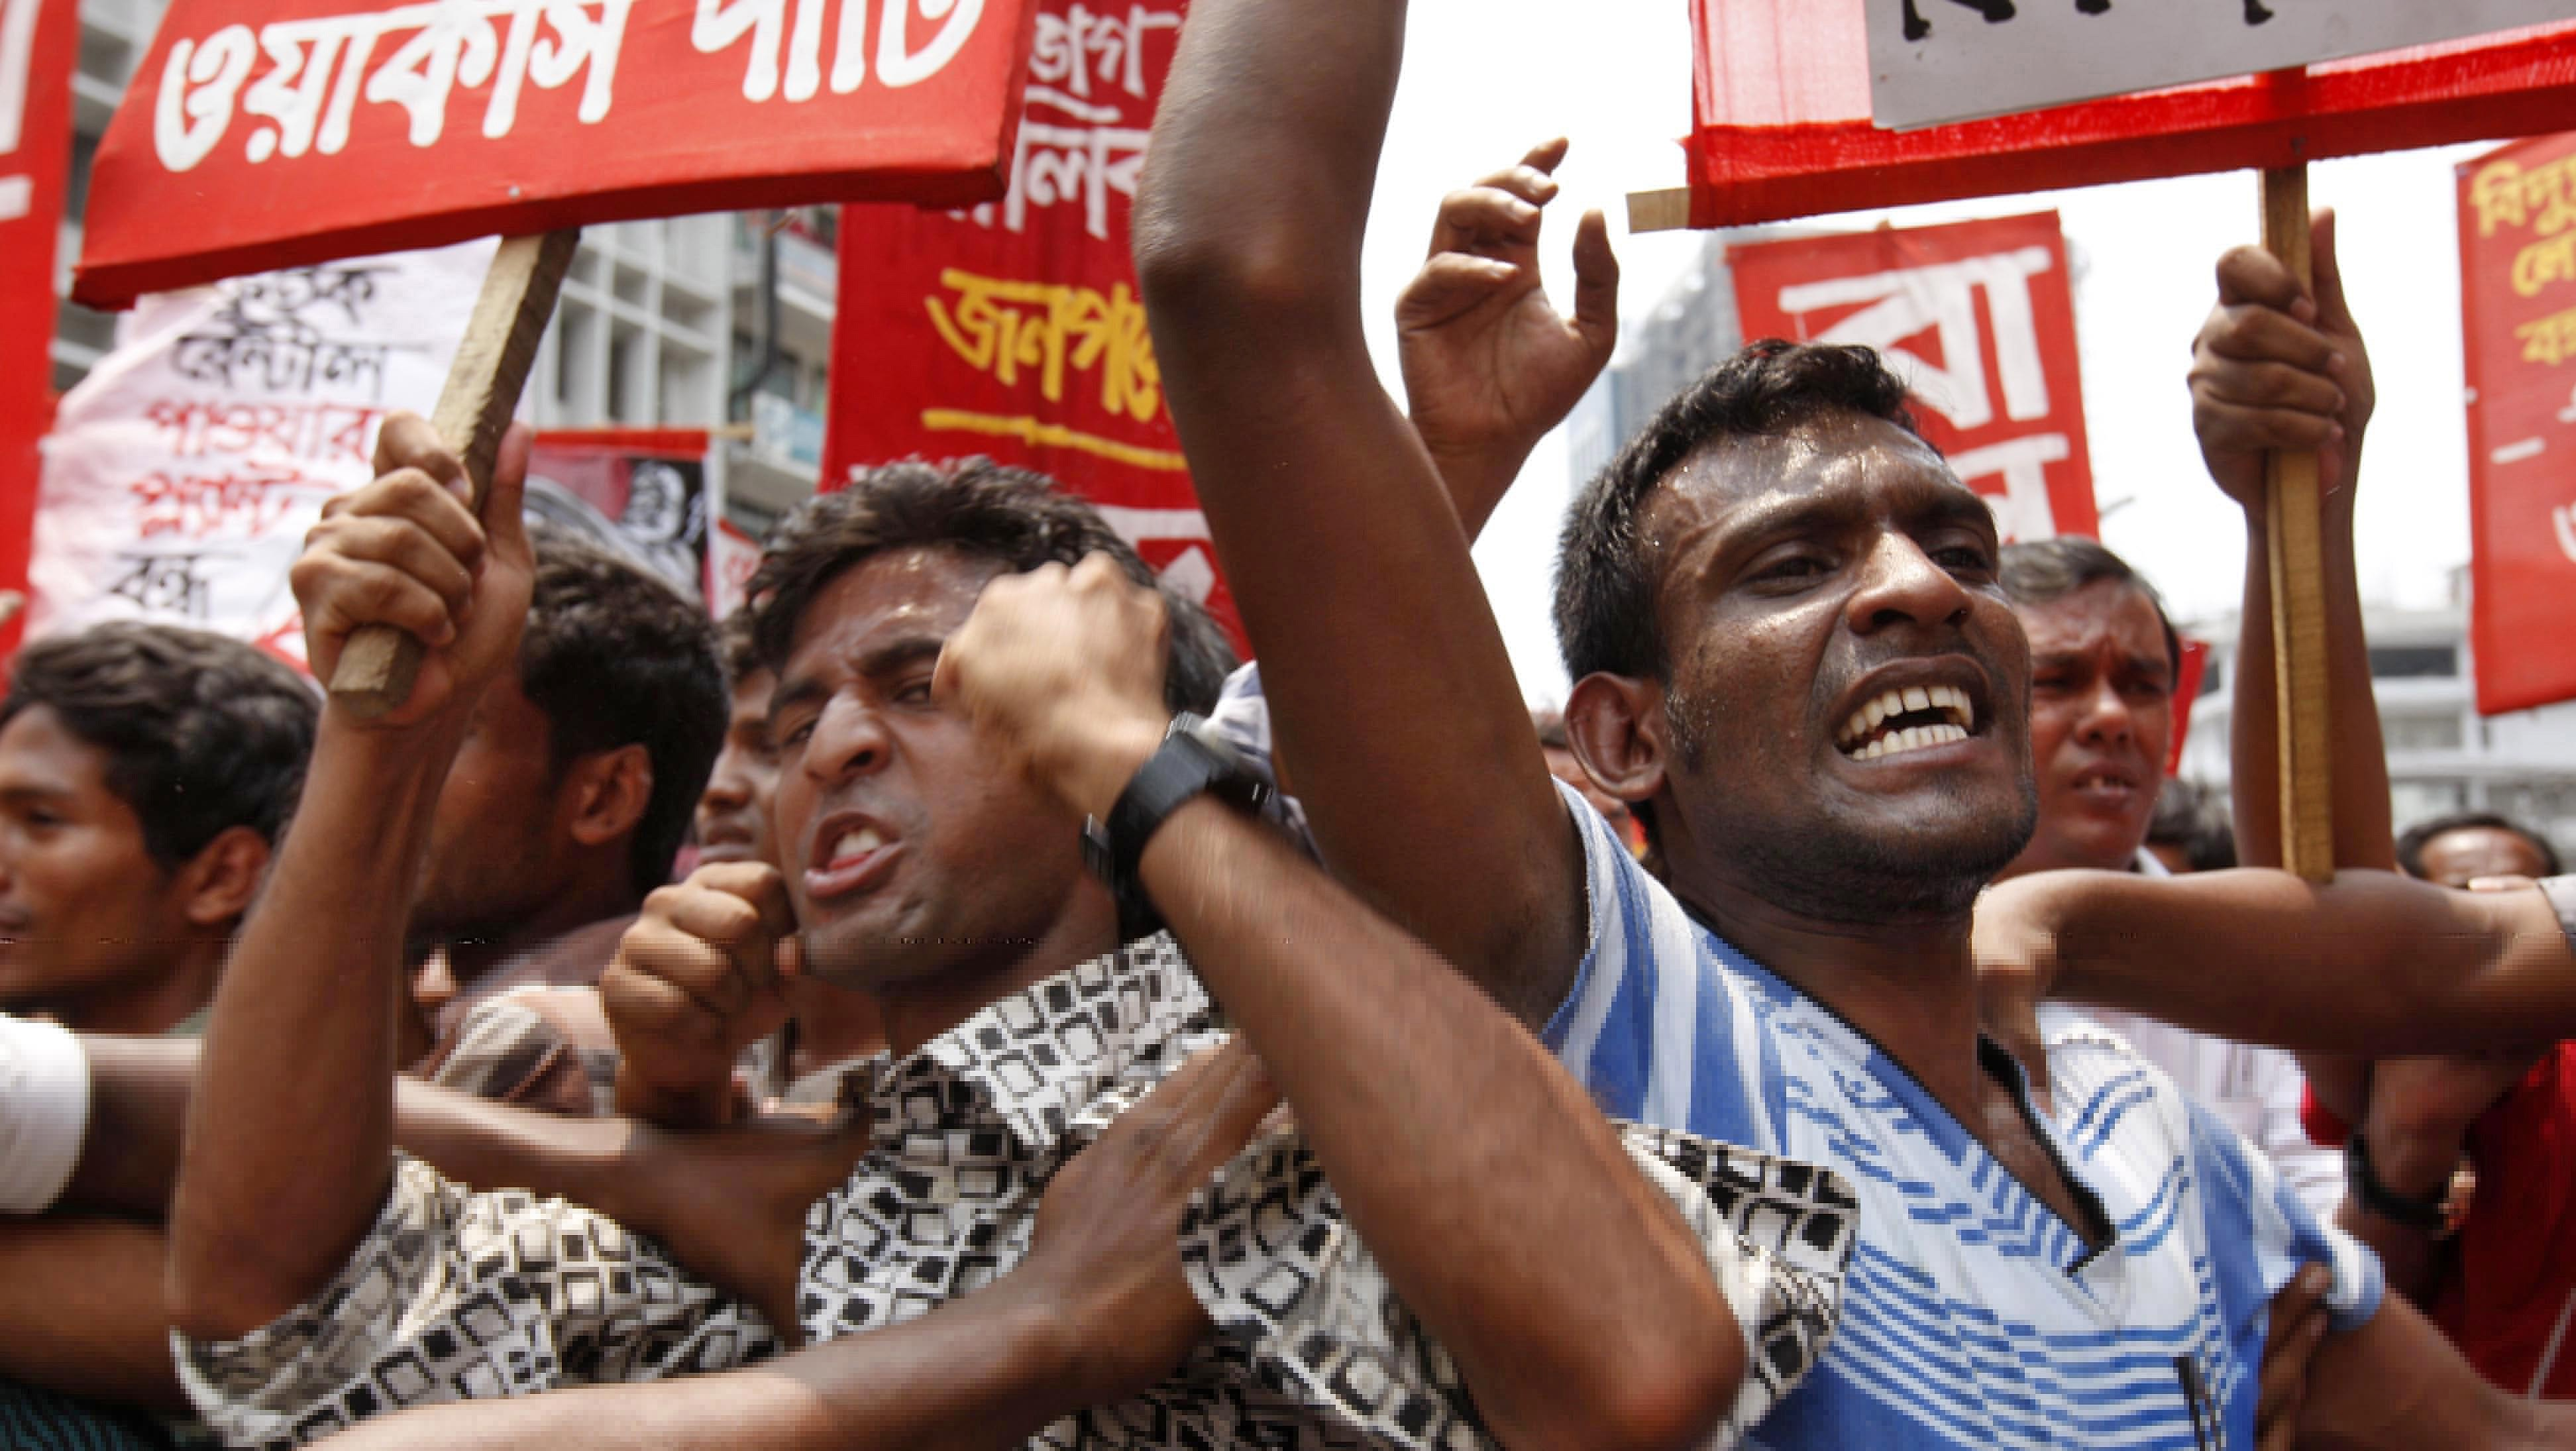 Proposed Chinese Coal Plants Spark Outrage, Arrests, and Deaths in Bangladesh